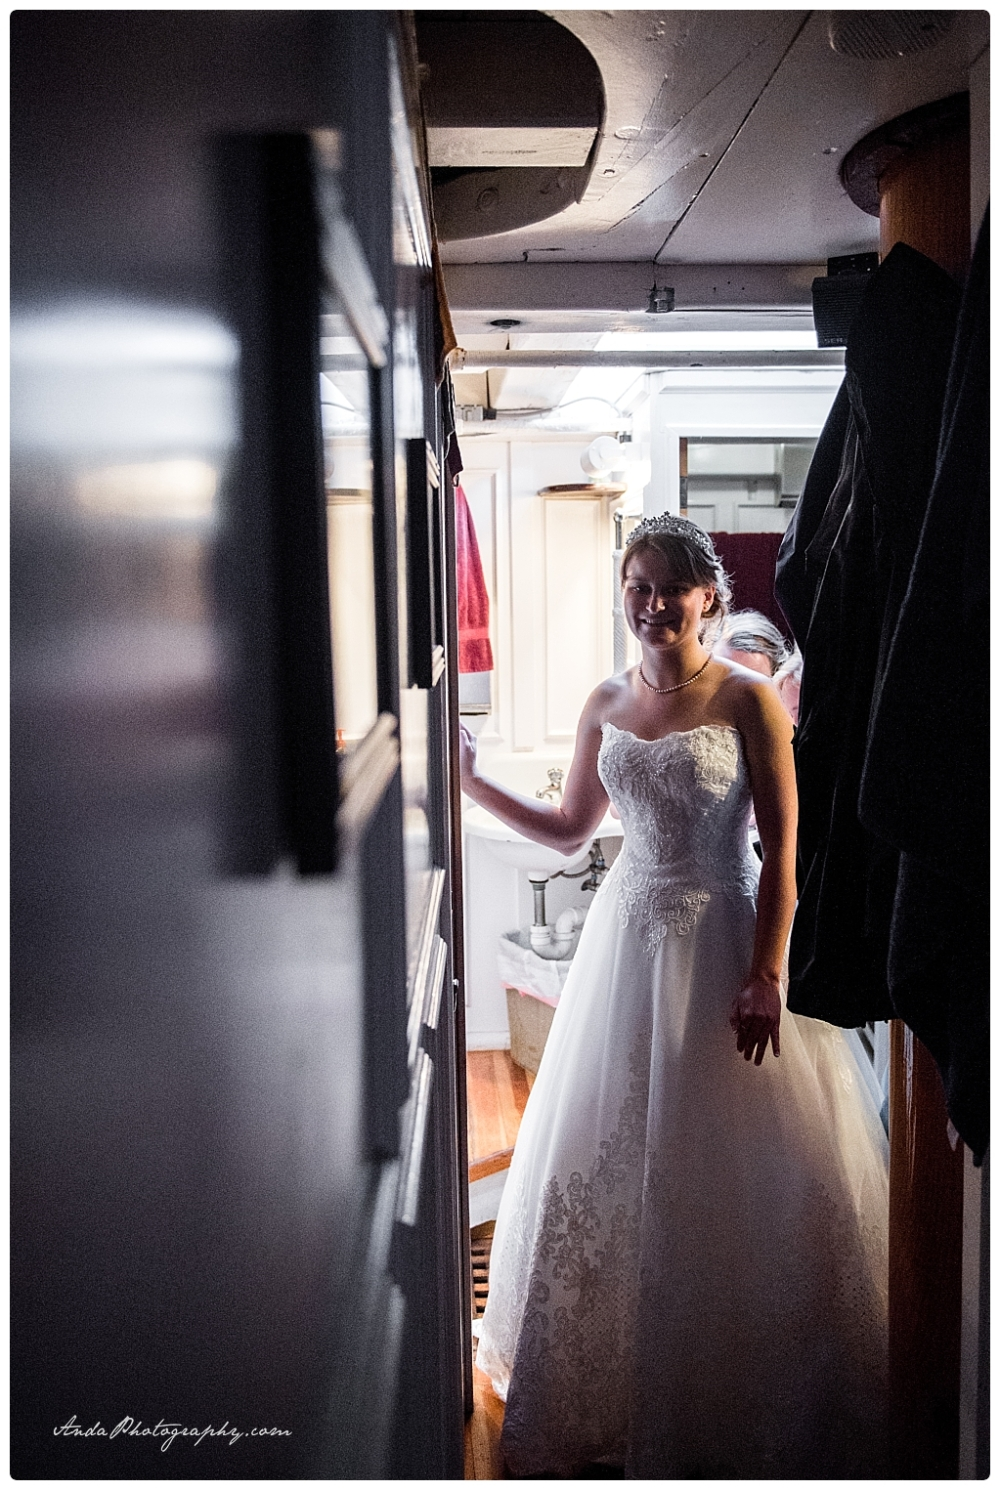 Anda Photography Bellingham wedding photographer seattle wedding photographer Schooner Zodiak Wedding photos_0021